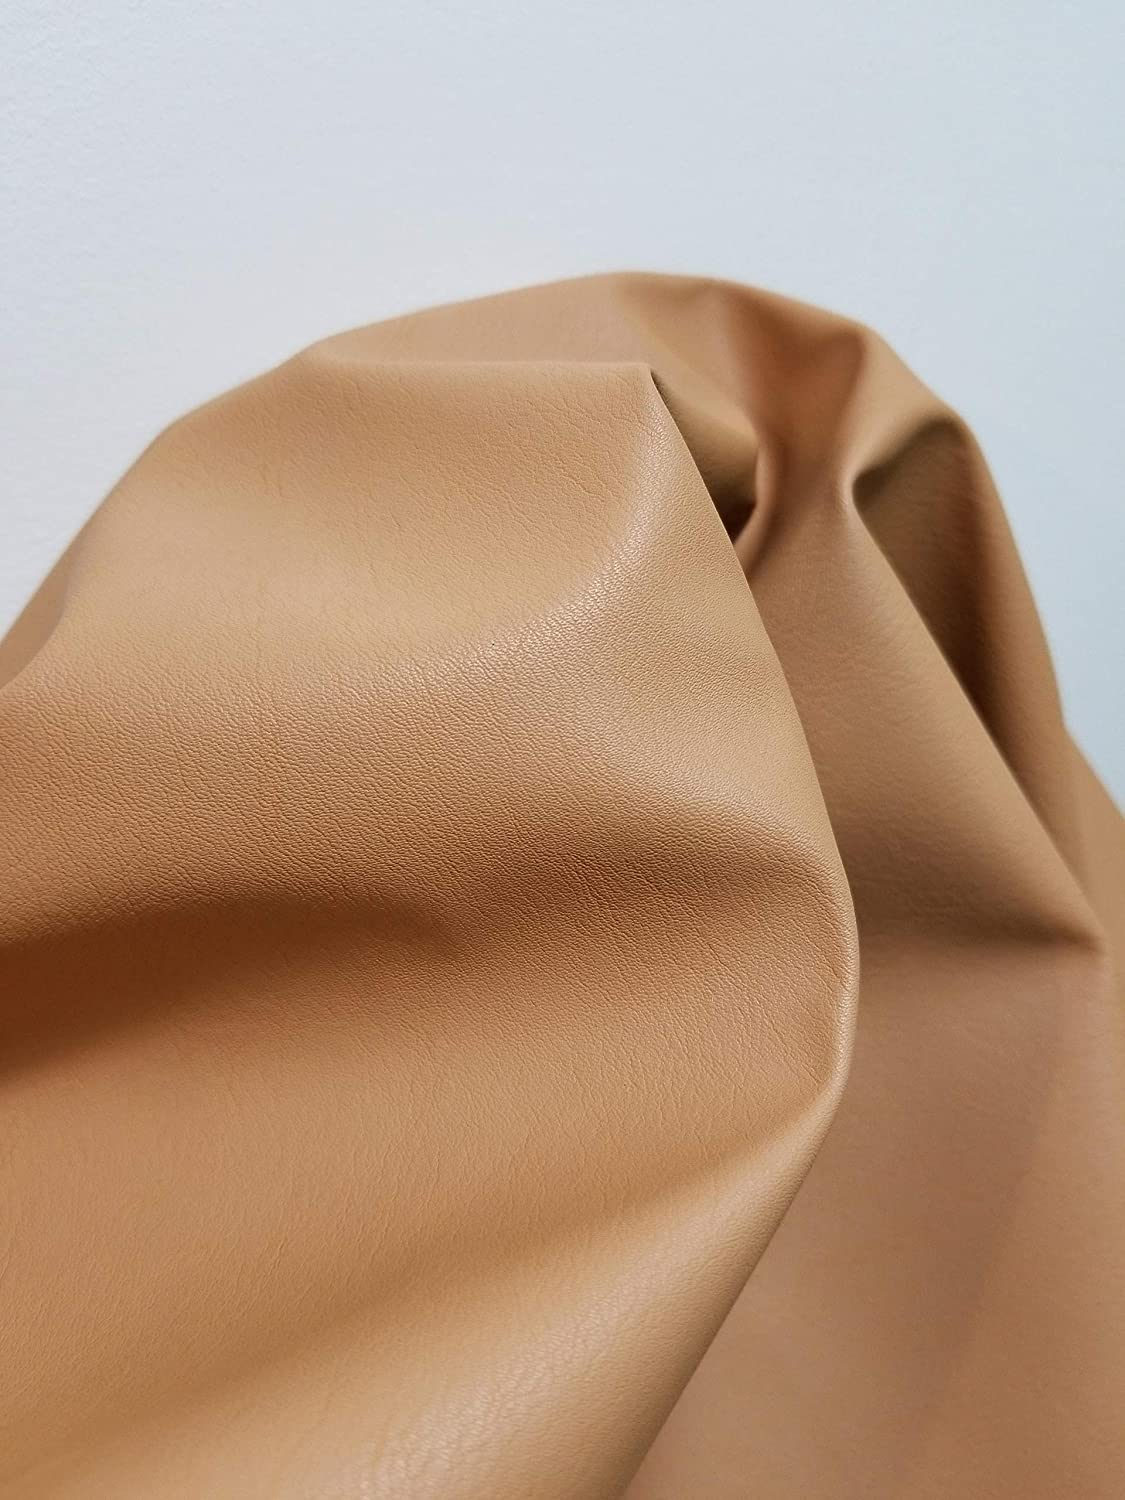 Nude Beige Cuoio Faux Vegan nubuck nappa finish Leather Synthetic Pleather 0.9 mm Madison 1 yard 52 inch wide x 36 inch long Vegetable tanned look Soft smooth vinyl Upholstery (Nude Beige Vachetta) NAT Leathers